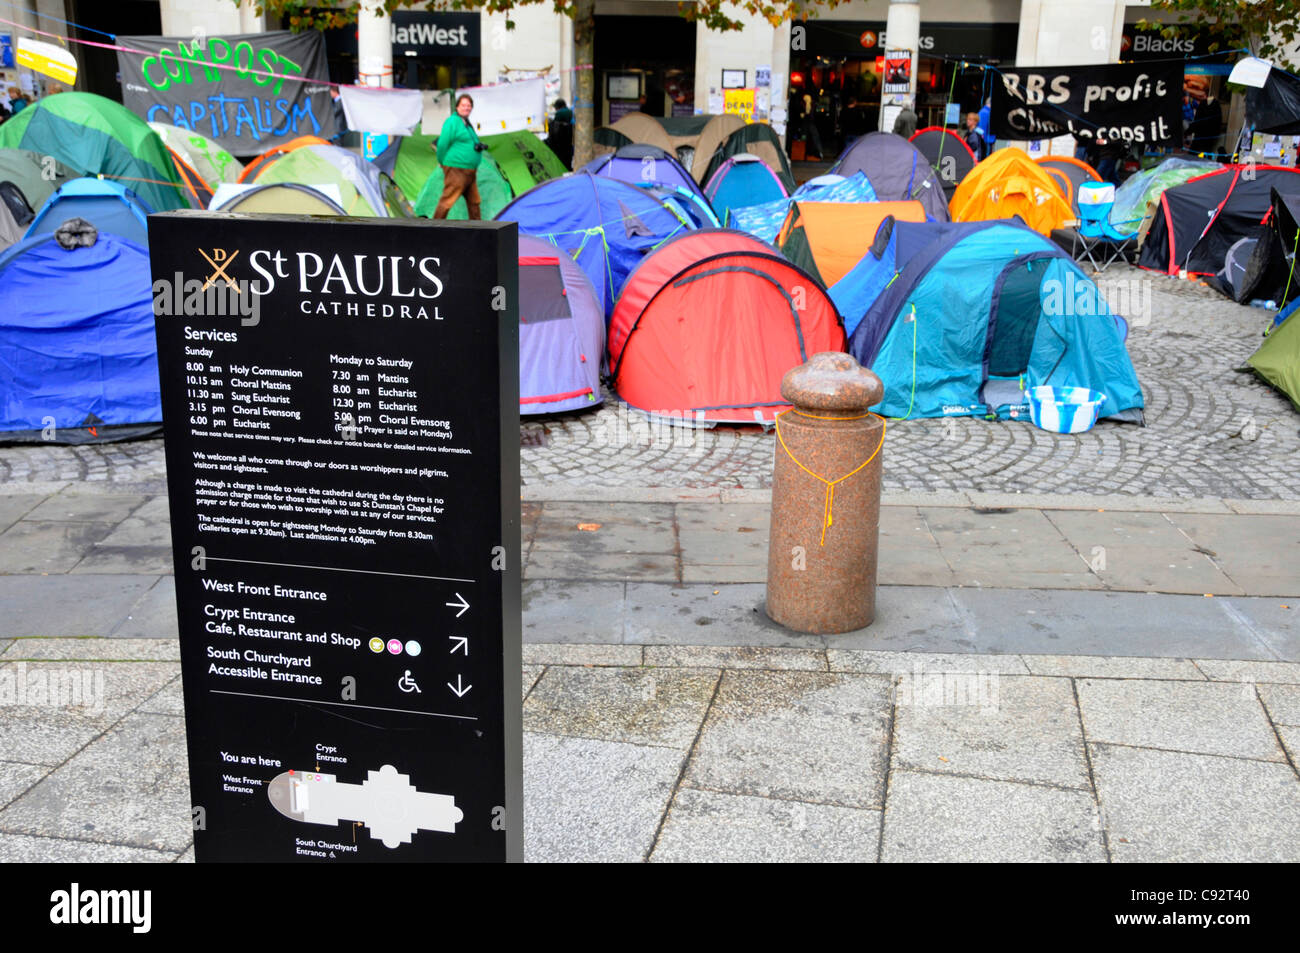 St Pauls cathedral information panel with anti capitalist protesters tents and Stock Exchange entrance beyond City - Stock Image